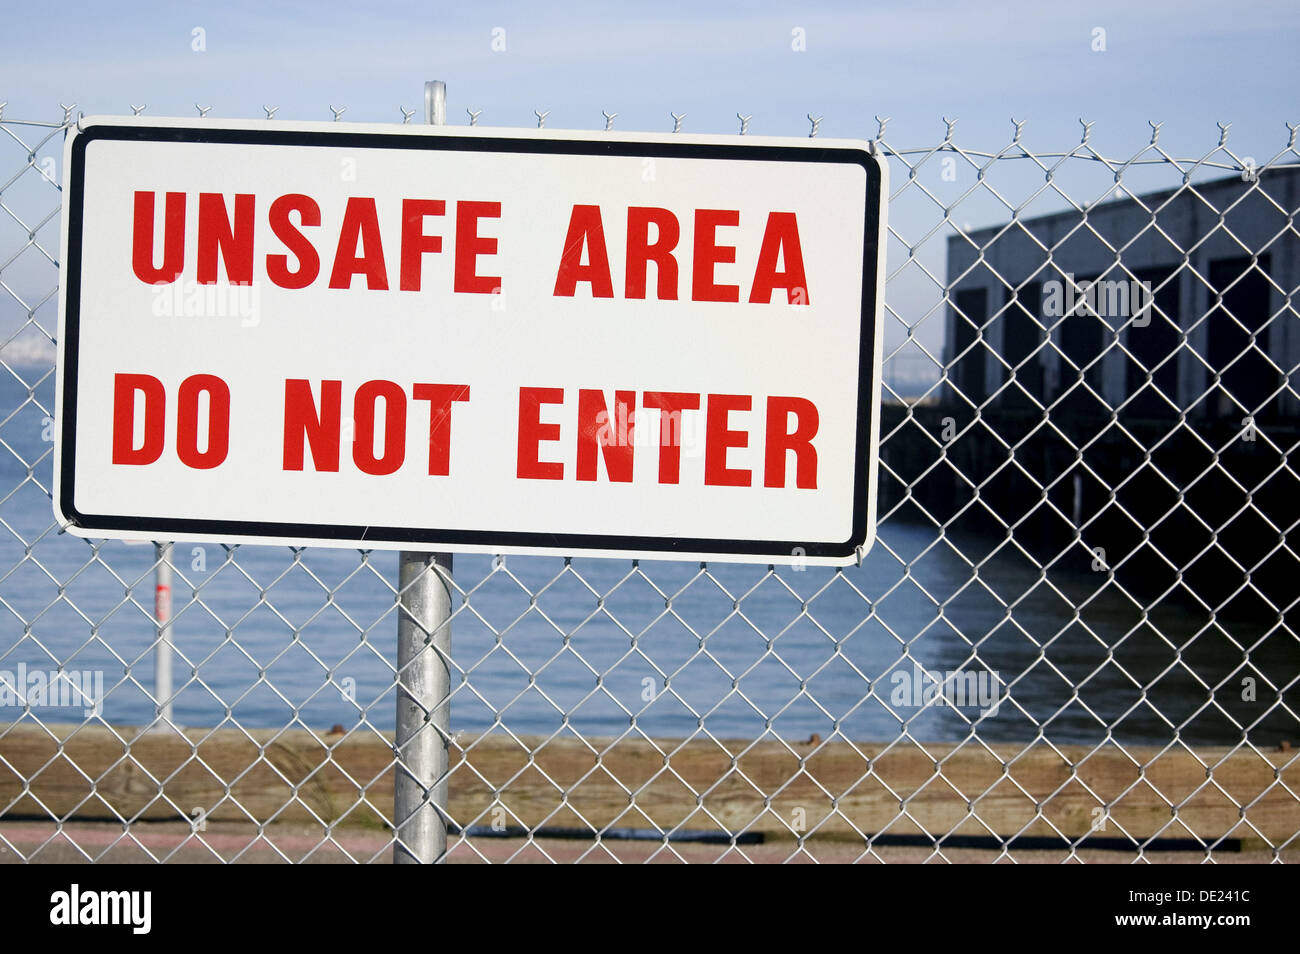 ´Unsafe Area Do Not Enter´. Sign on chain link fence. San Francisco. California. USA. - Stock Image